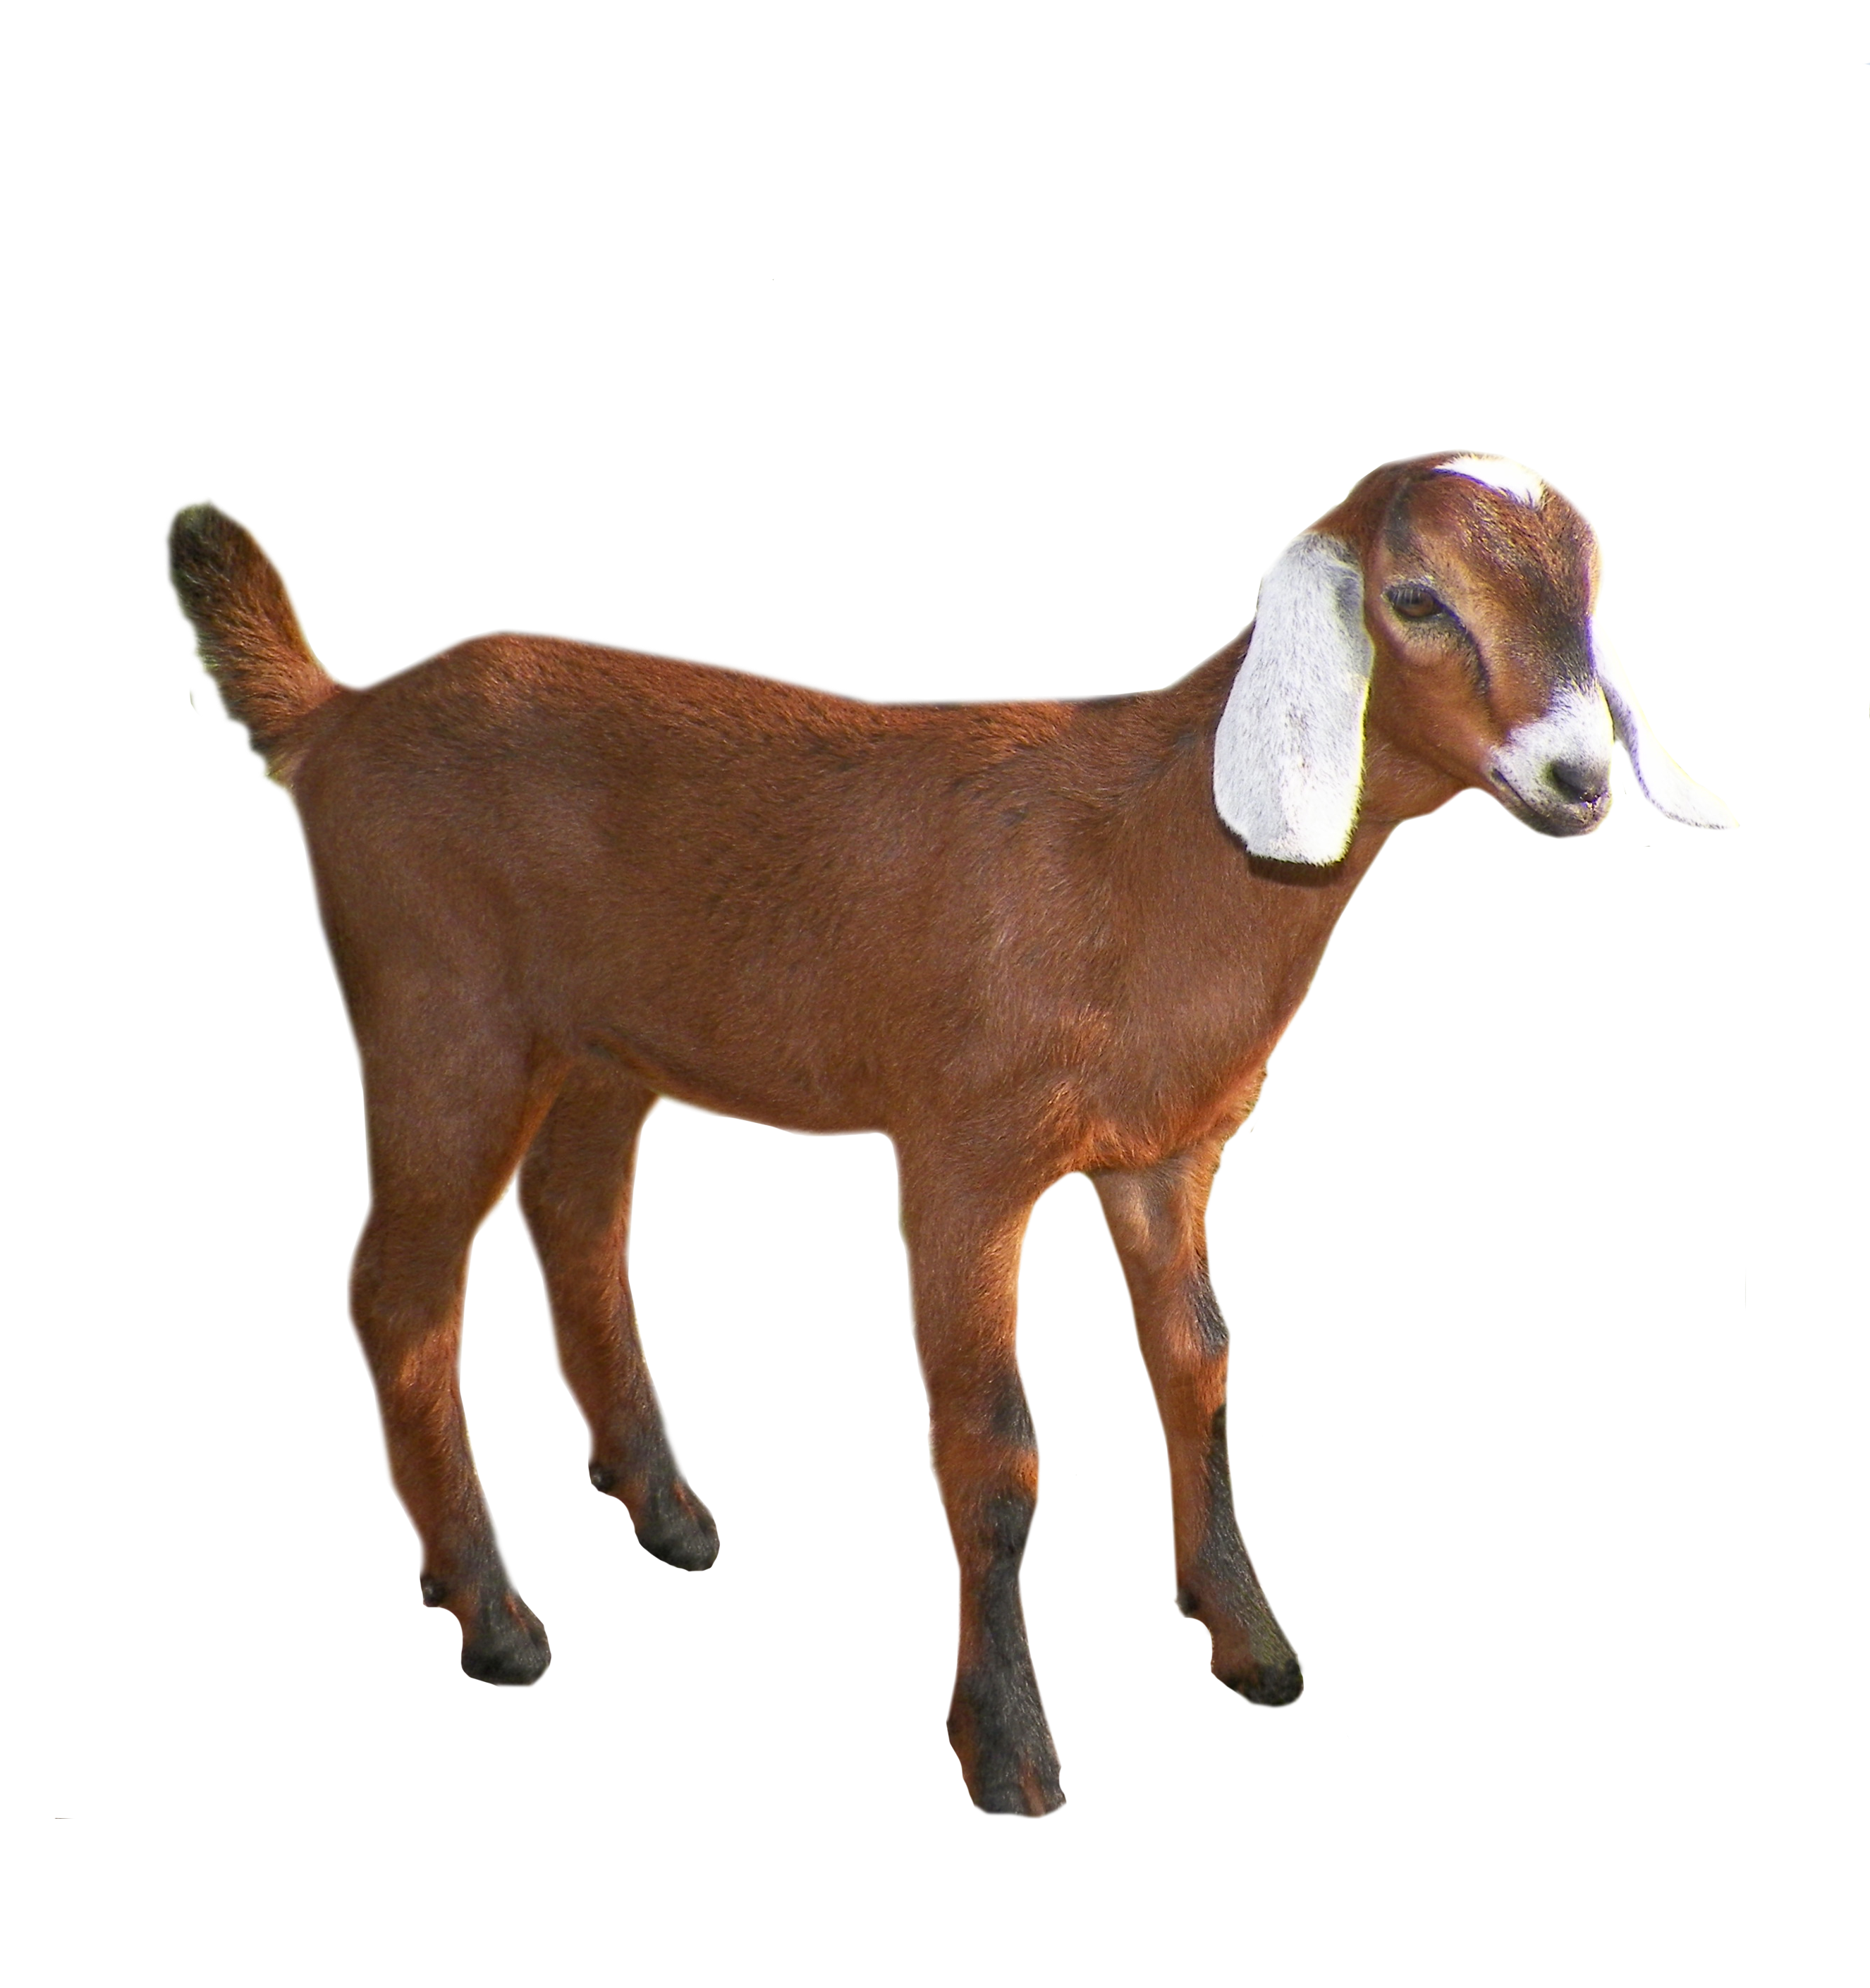 Goat png. Images free download